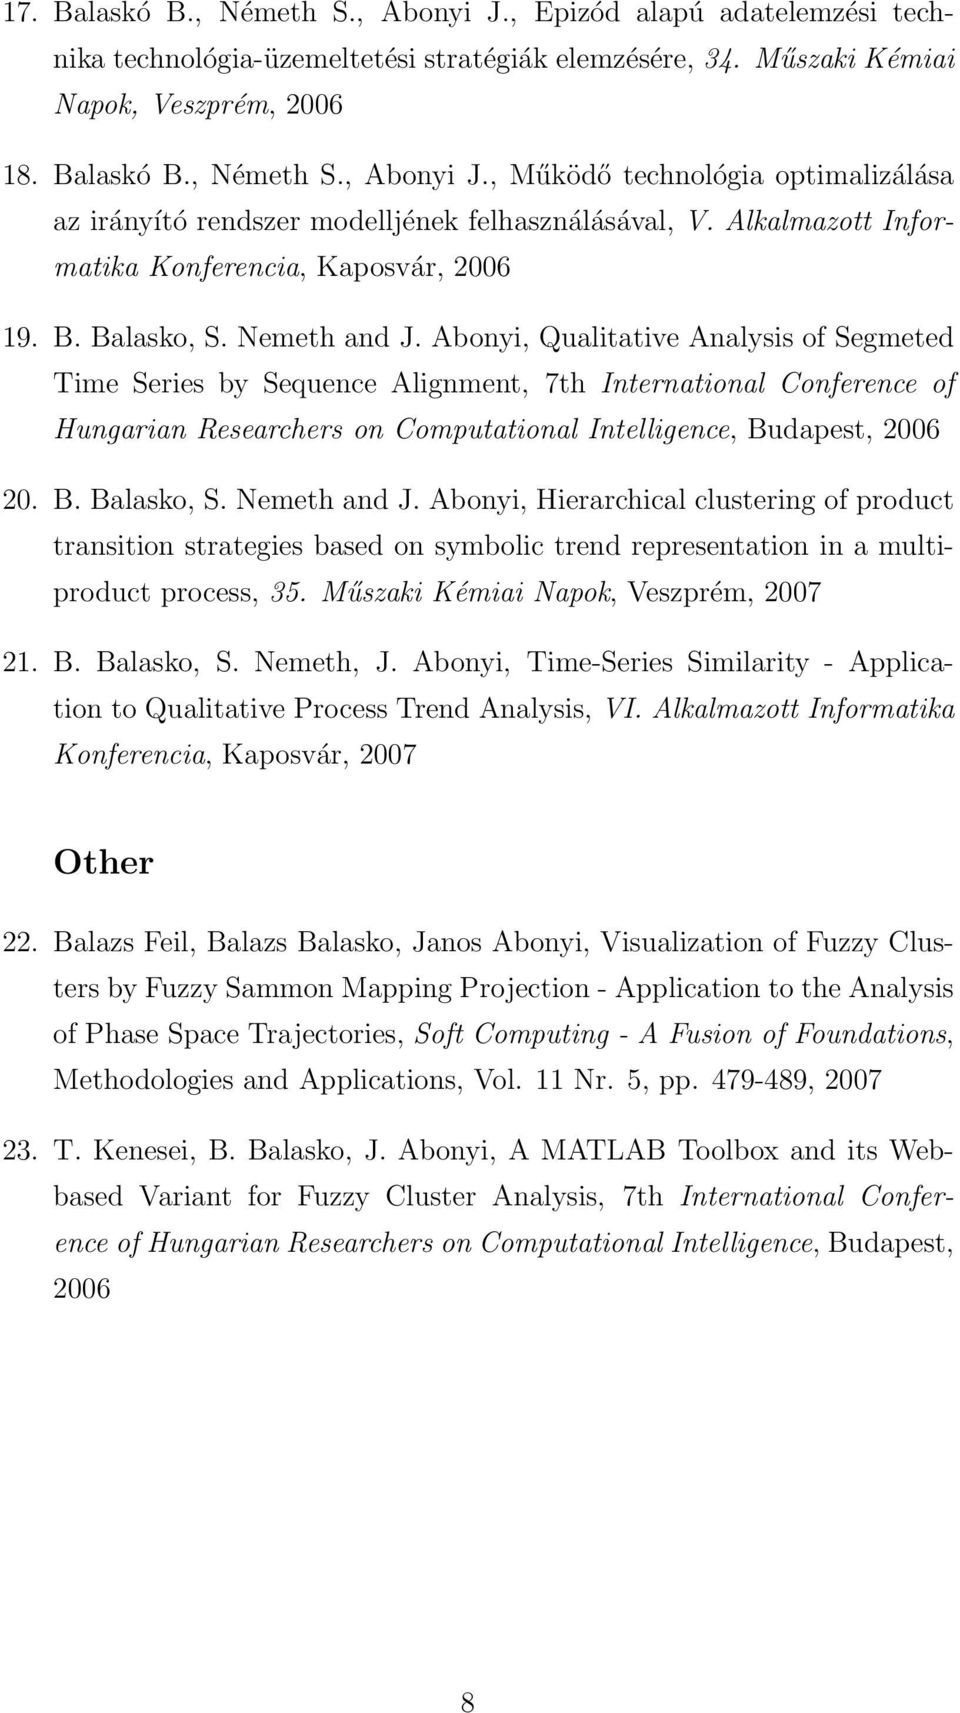 Abonyi, Qualitative Analysis of Segmeted Time Series by Sequence Alignment, 7th International Conference of Hungarian Researchers on Computational Intelligence, Budapest, 2006 20. B. Balasko, S.